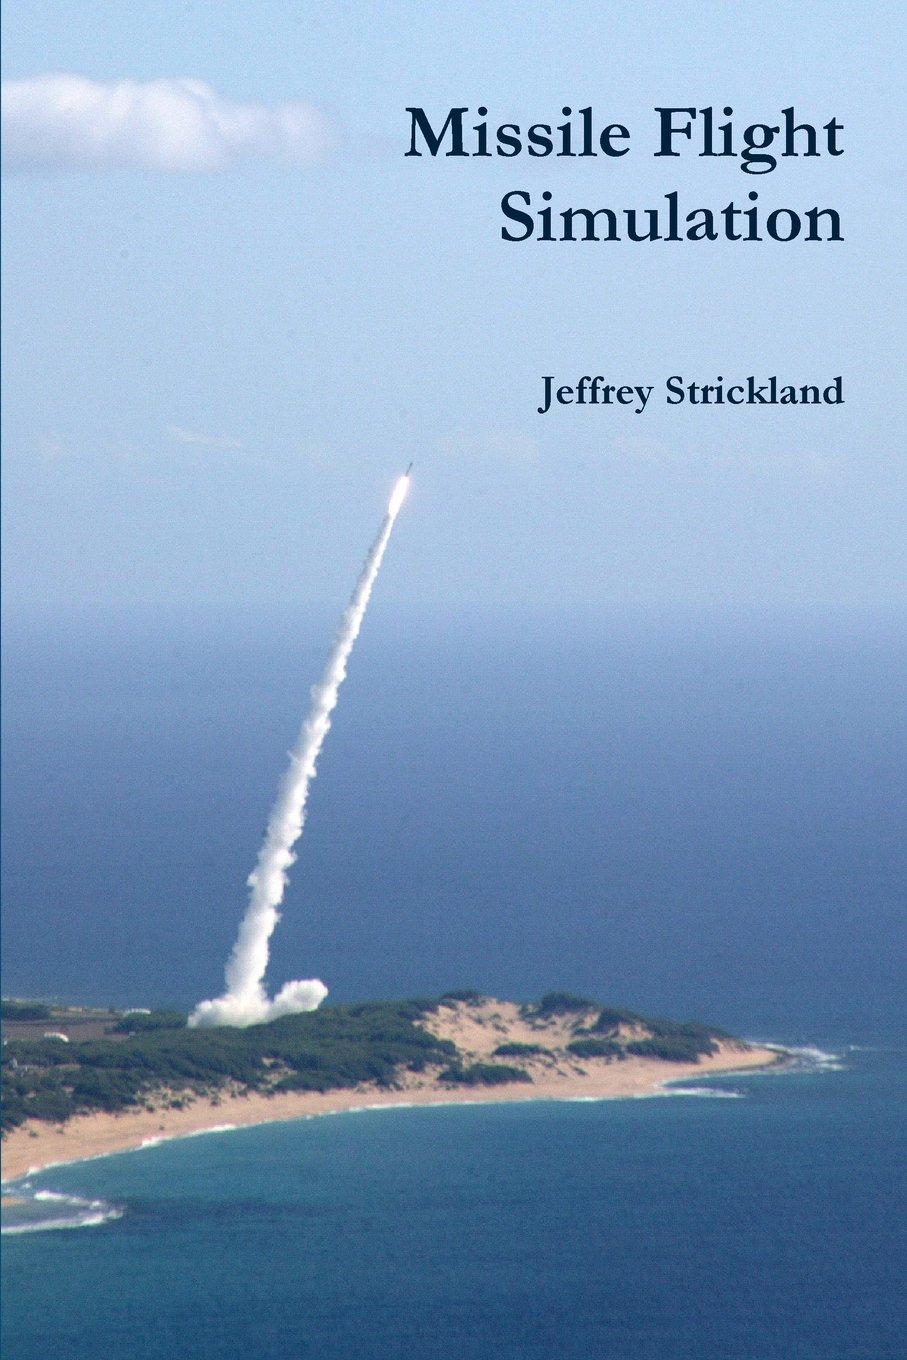 Missile Flight Simulation: Amazon co uk: Jeffrey Strickland